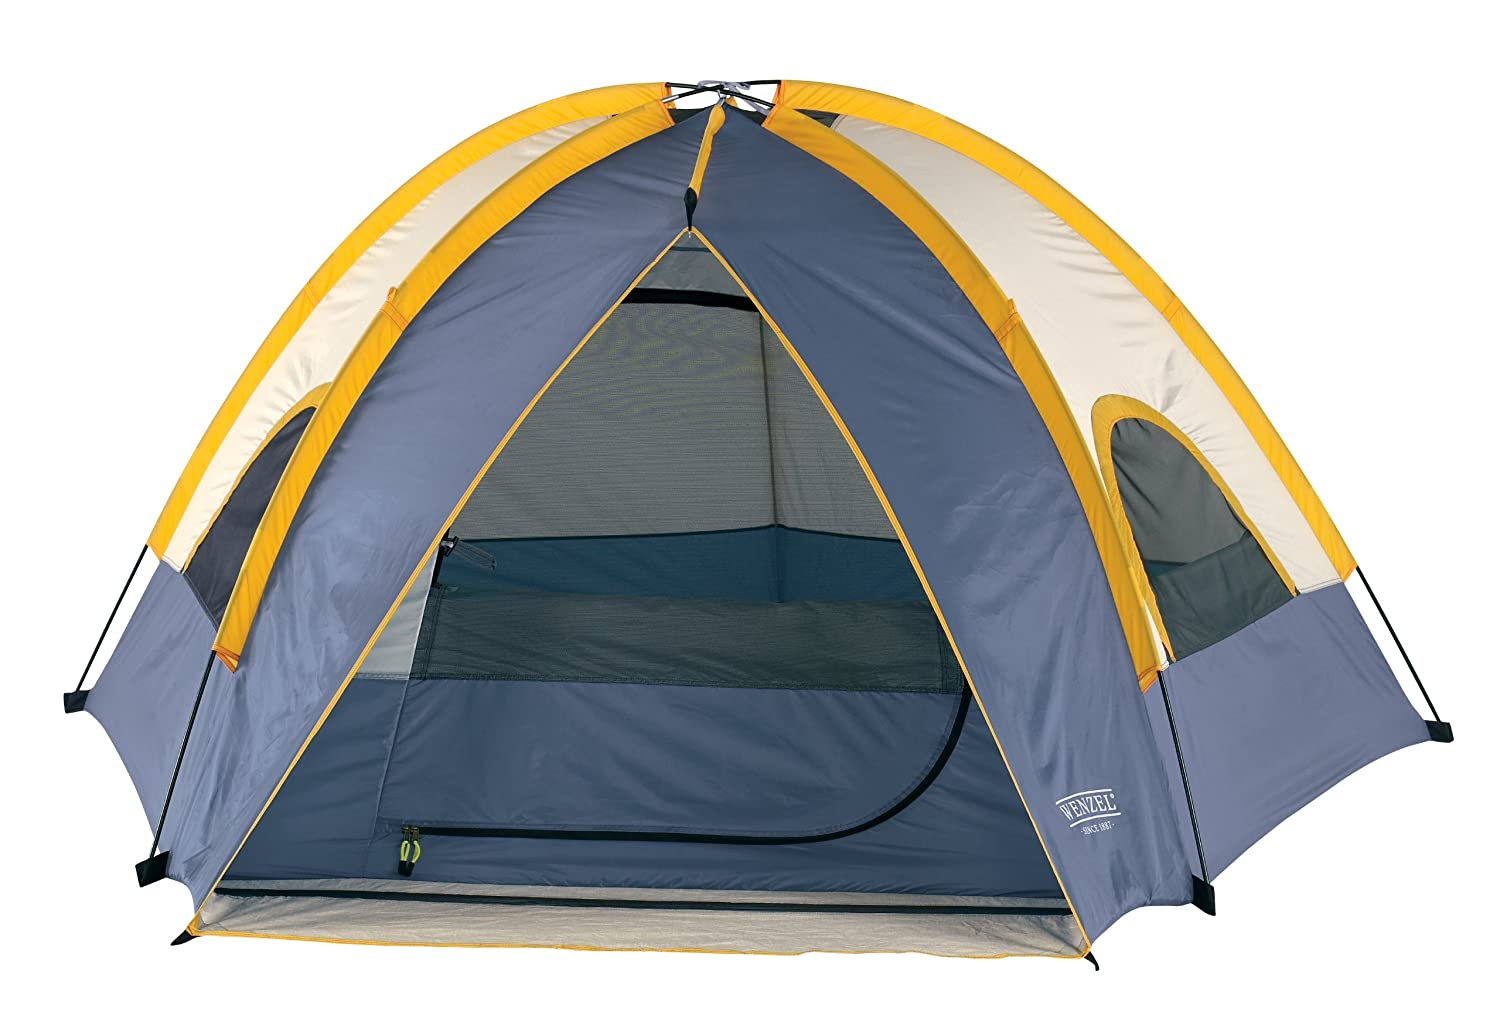 sc 1 st  Amazon India & Wenzel Alpine Tent - 3 Person: Amazon.in: Sports Fitness u0026 Outdoors